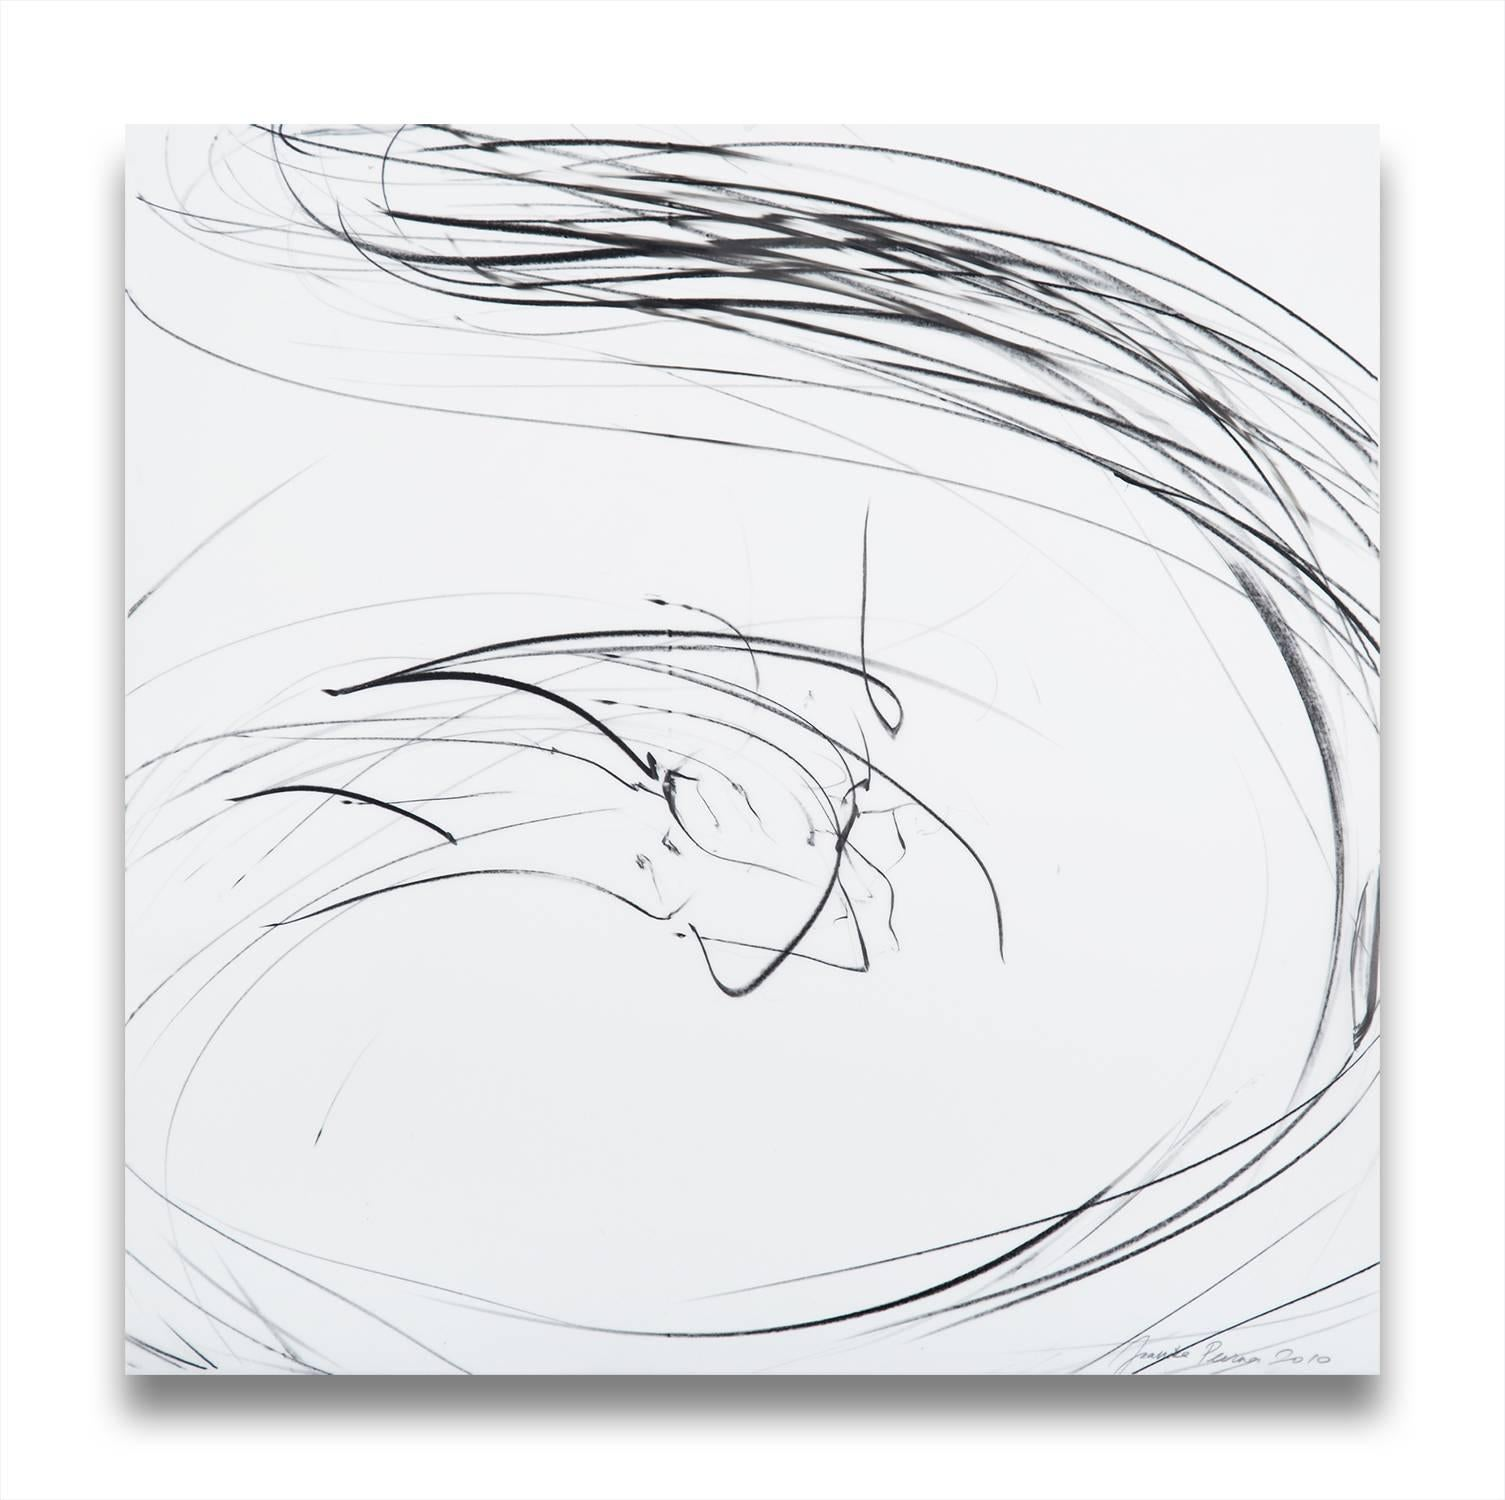 Small maelstrom (Ref 855) (Abstract drawing)